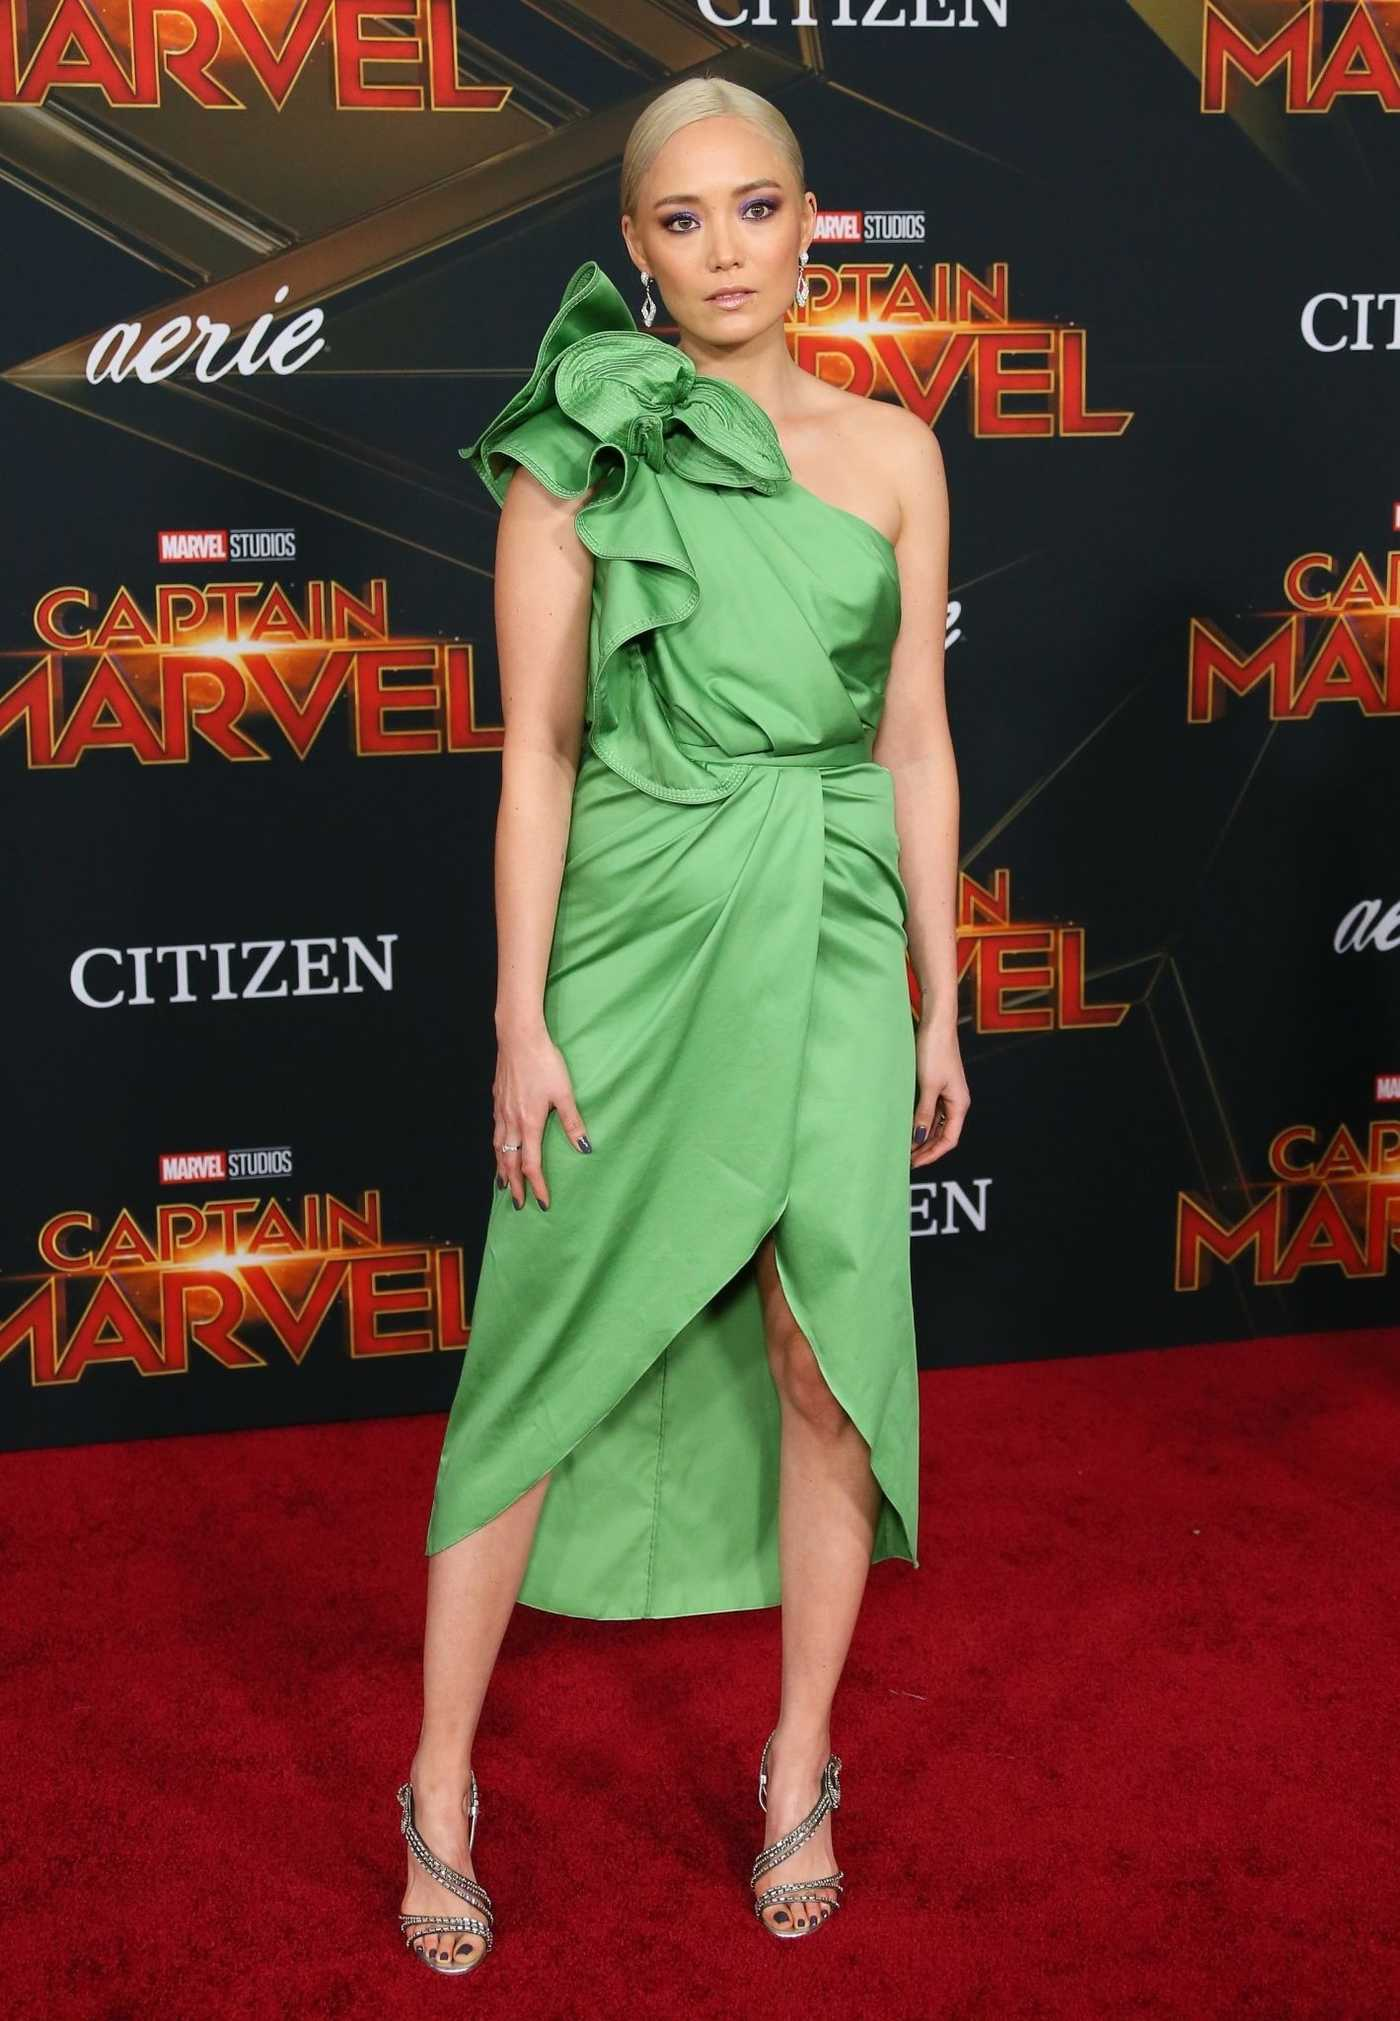 Pom Klementieff Attends the Captain Marvel Premiere at the El Capitan Theatre in Los Angeles 03/04/2019